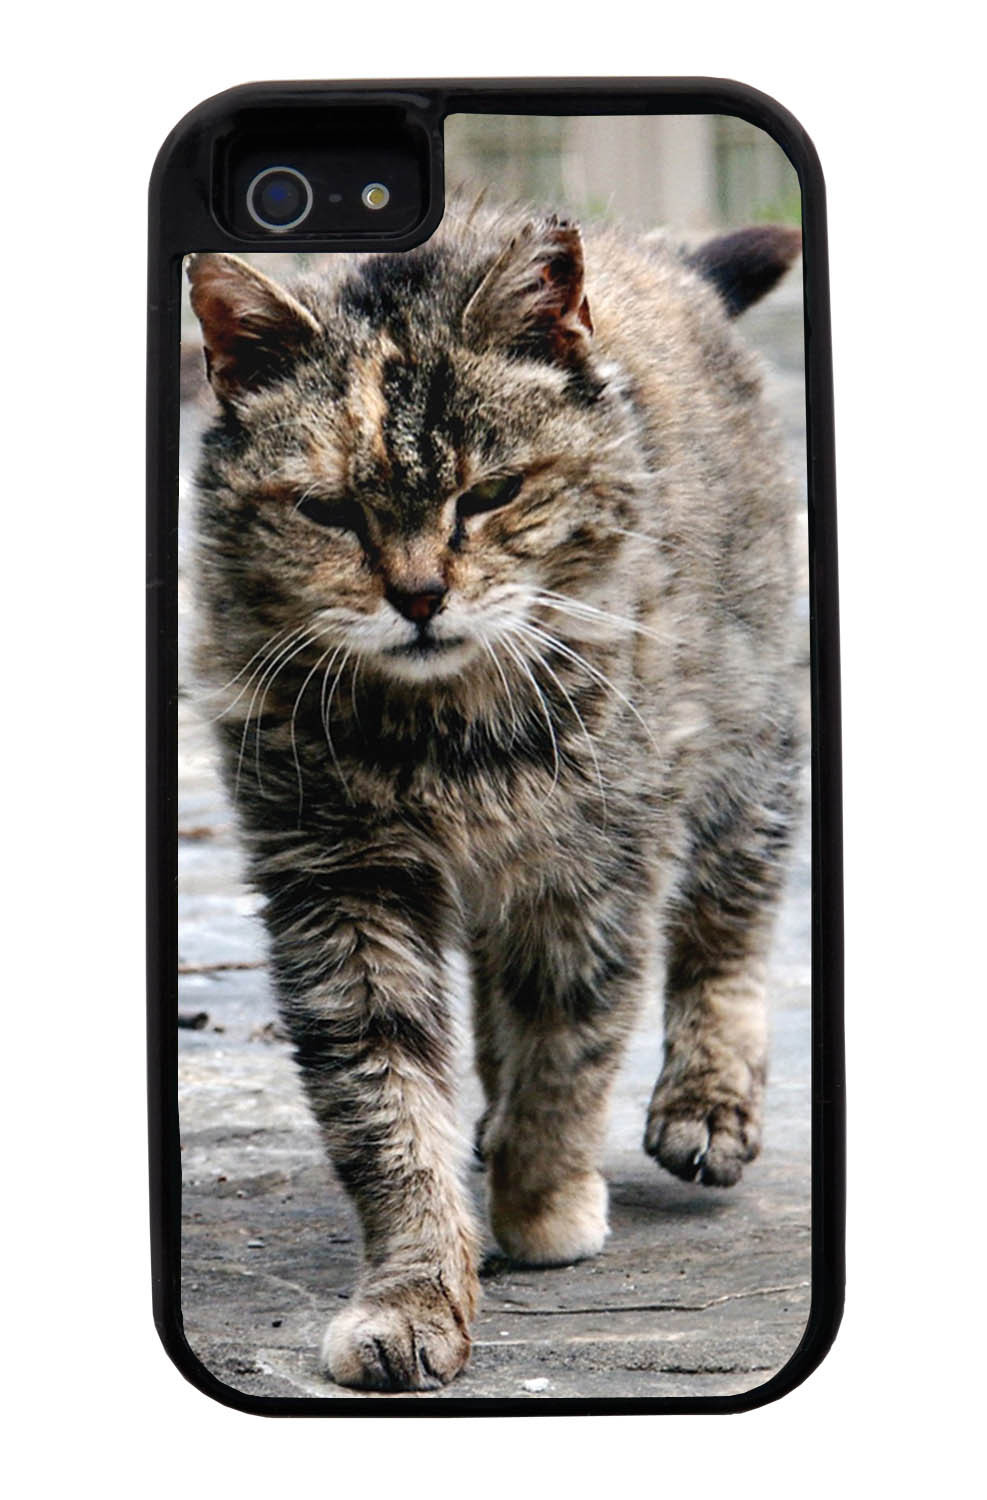 Apple iPhone 5 / 5S Cat Case - Strutting Cat Photo - Cute Pictures - Black Tough Hybrid Case